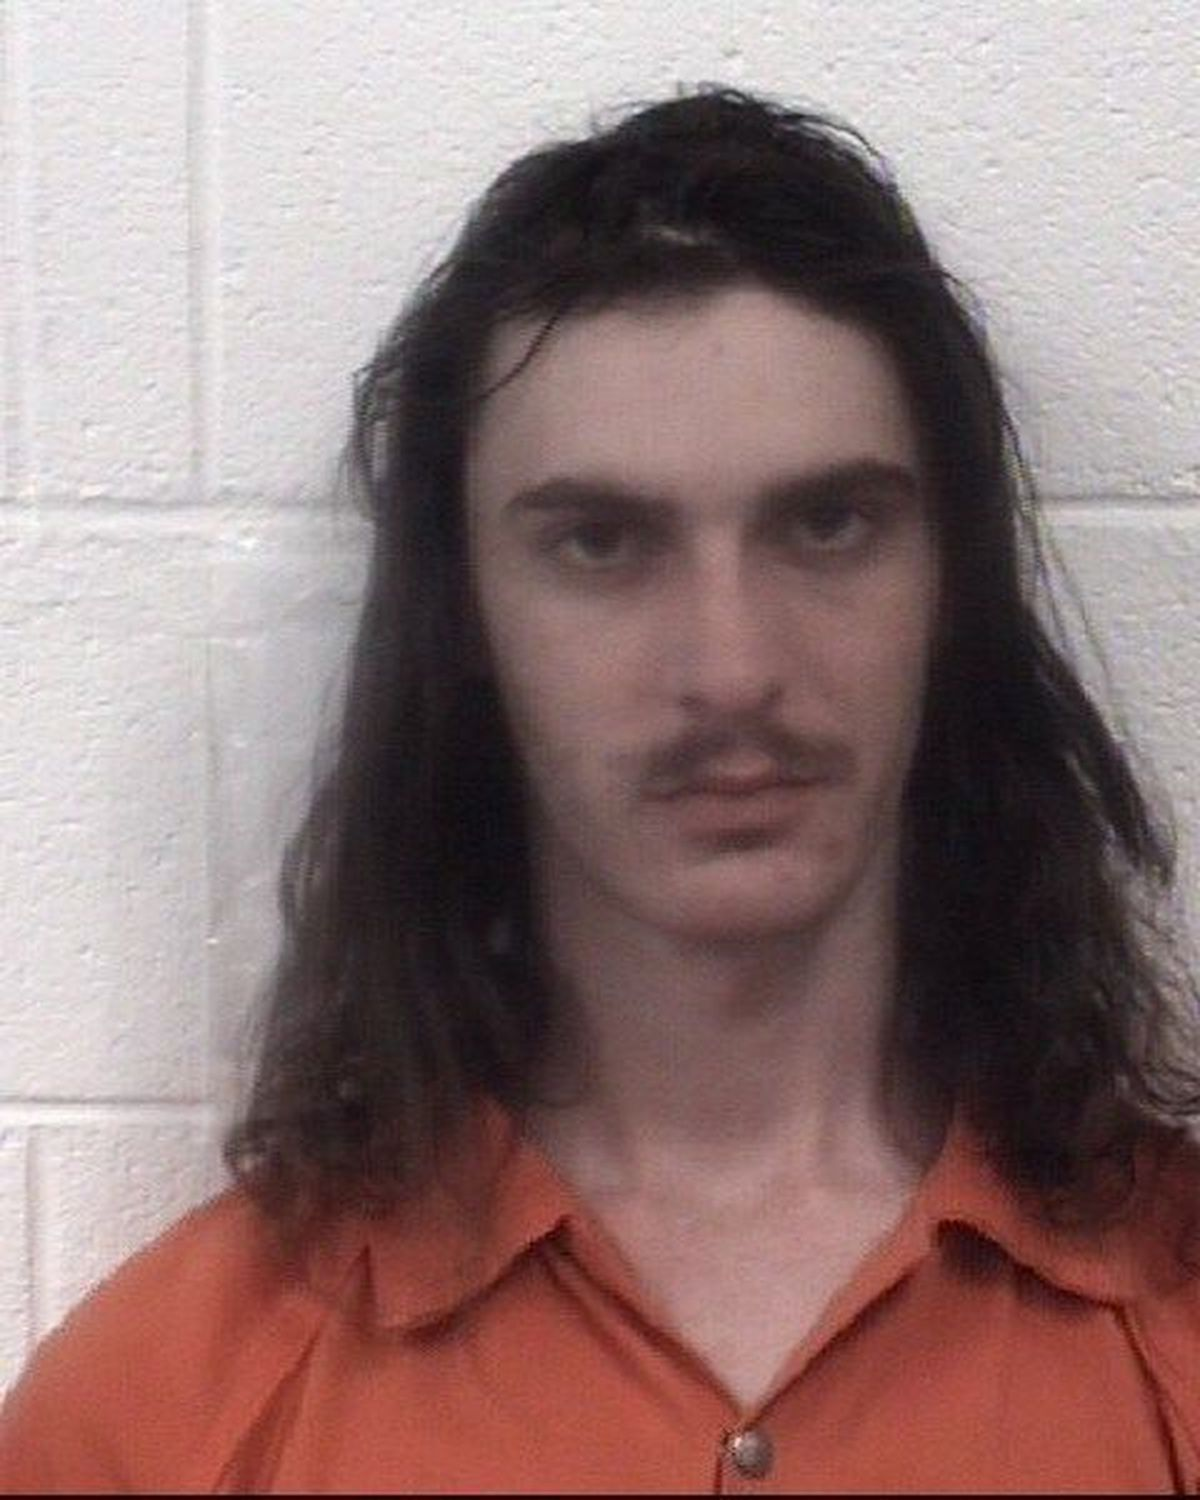 Pair linked to more than 20 crime cases in Caldwell County